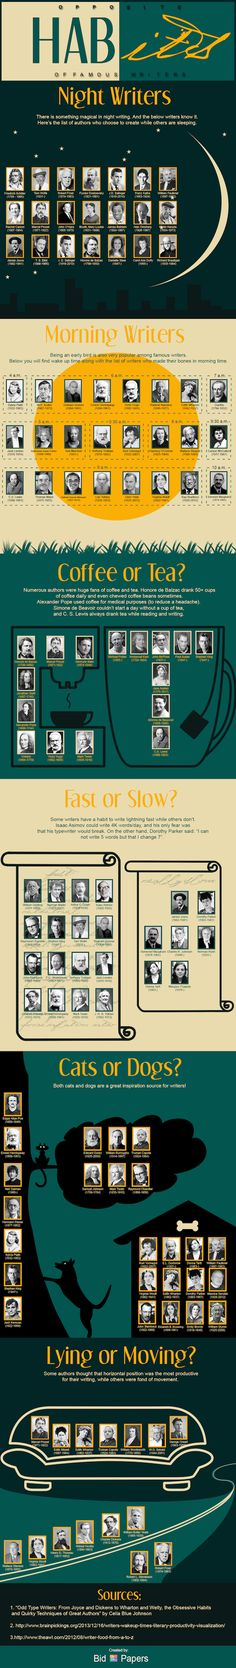 Habits of Famous #Writers